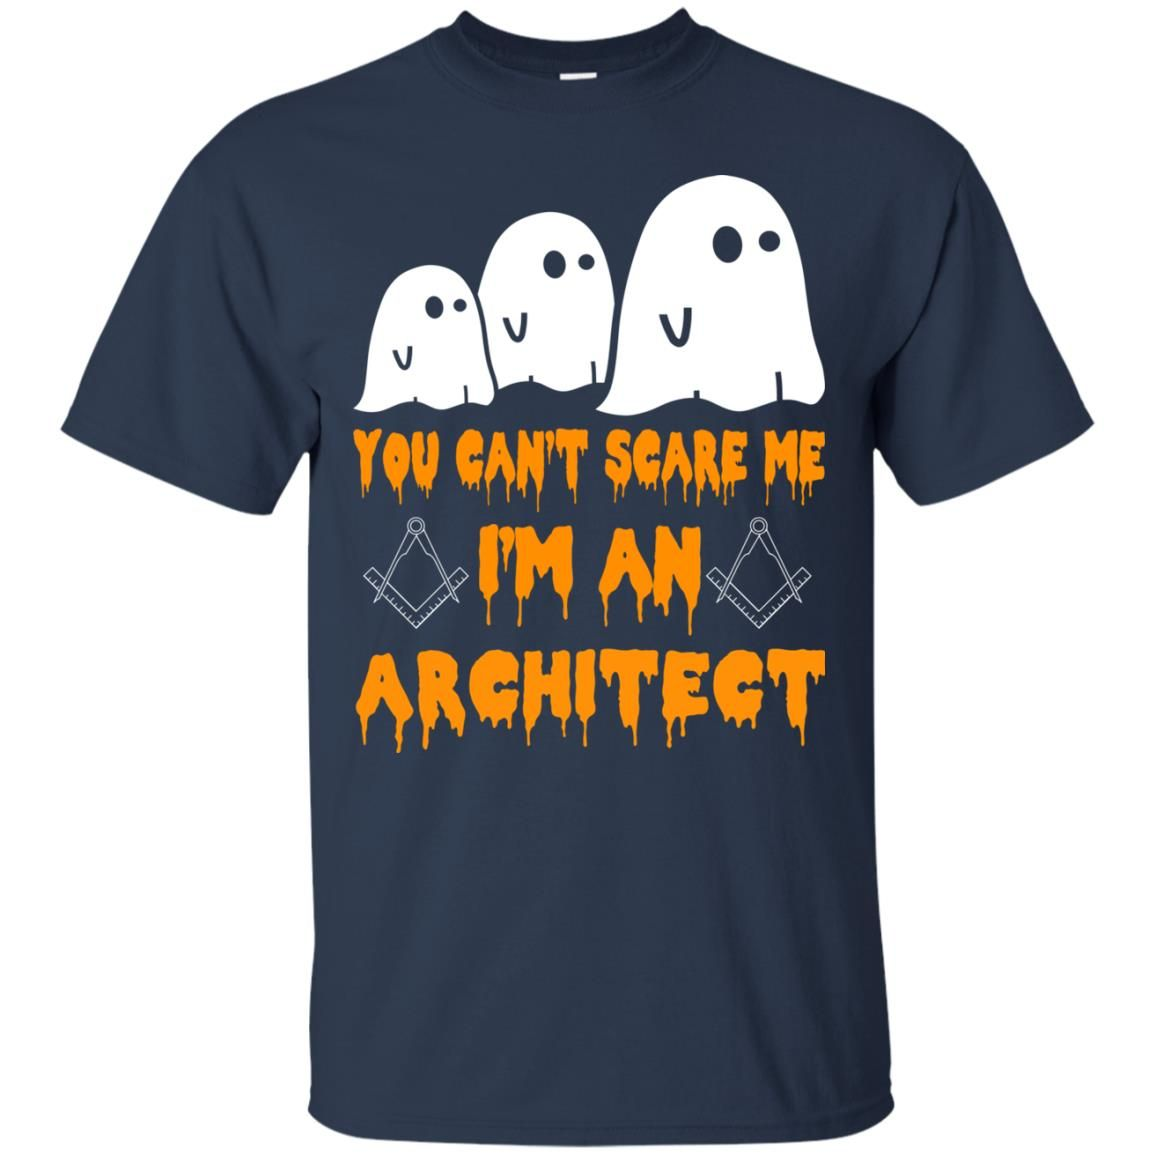 image 516 - You can't scare me I'm an Architect shirt, hoodie, tank